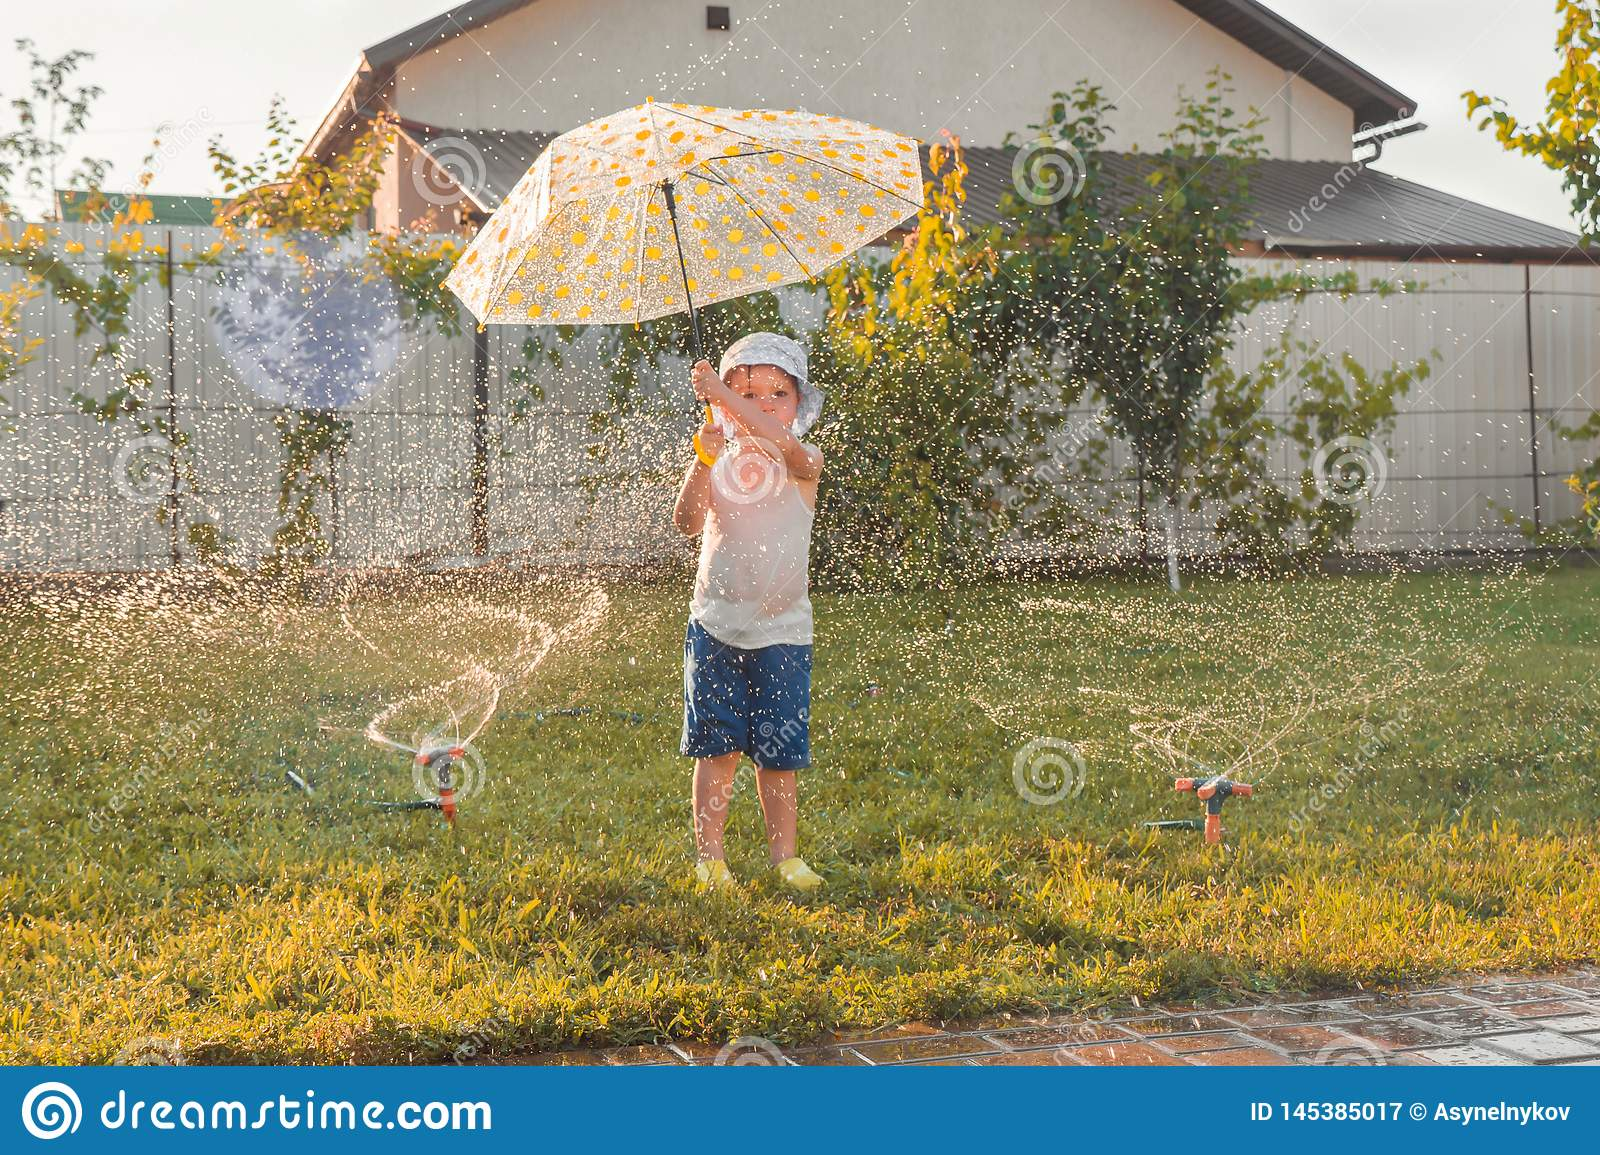 Summer activities. Children playing outdoor. Happy boy playing outdoor with watering system. Summer vacation. Summer